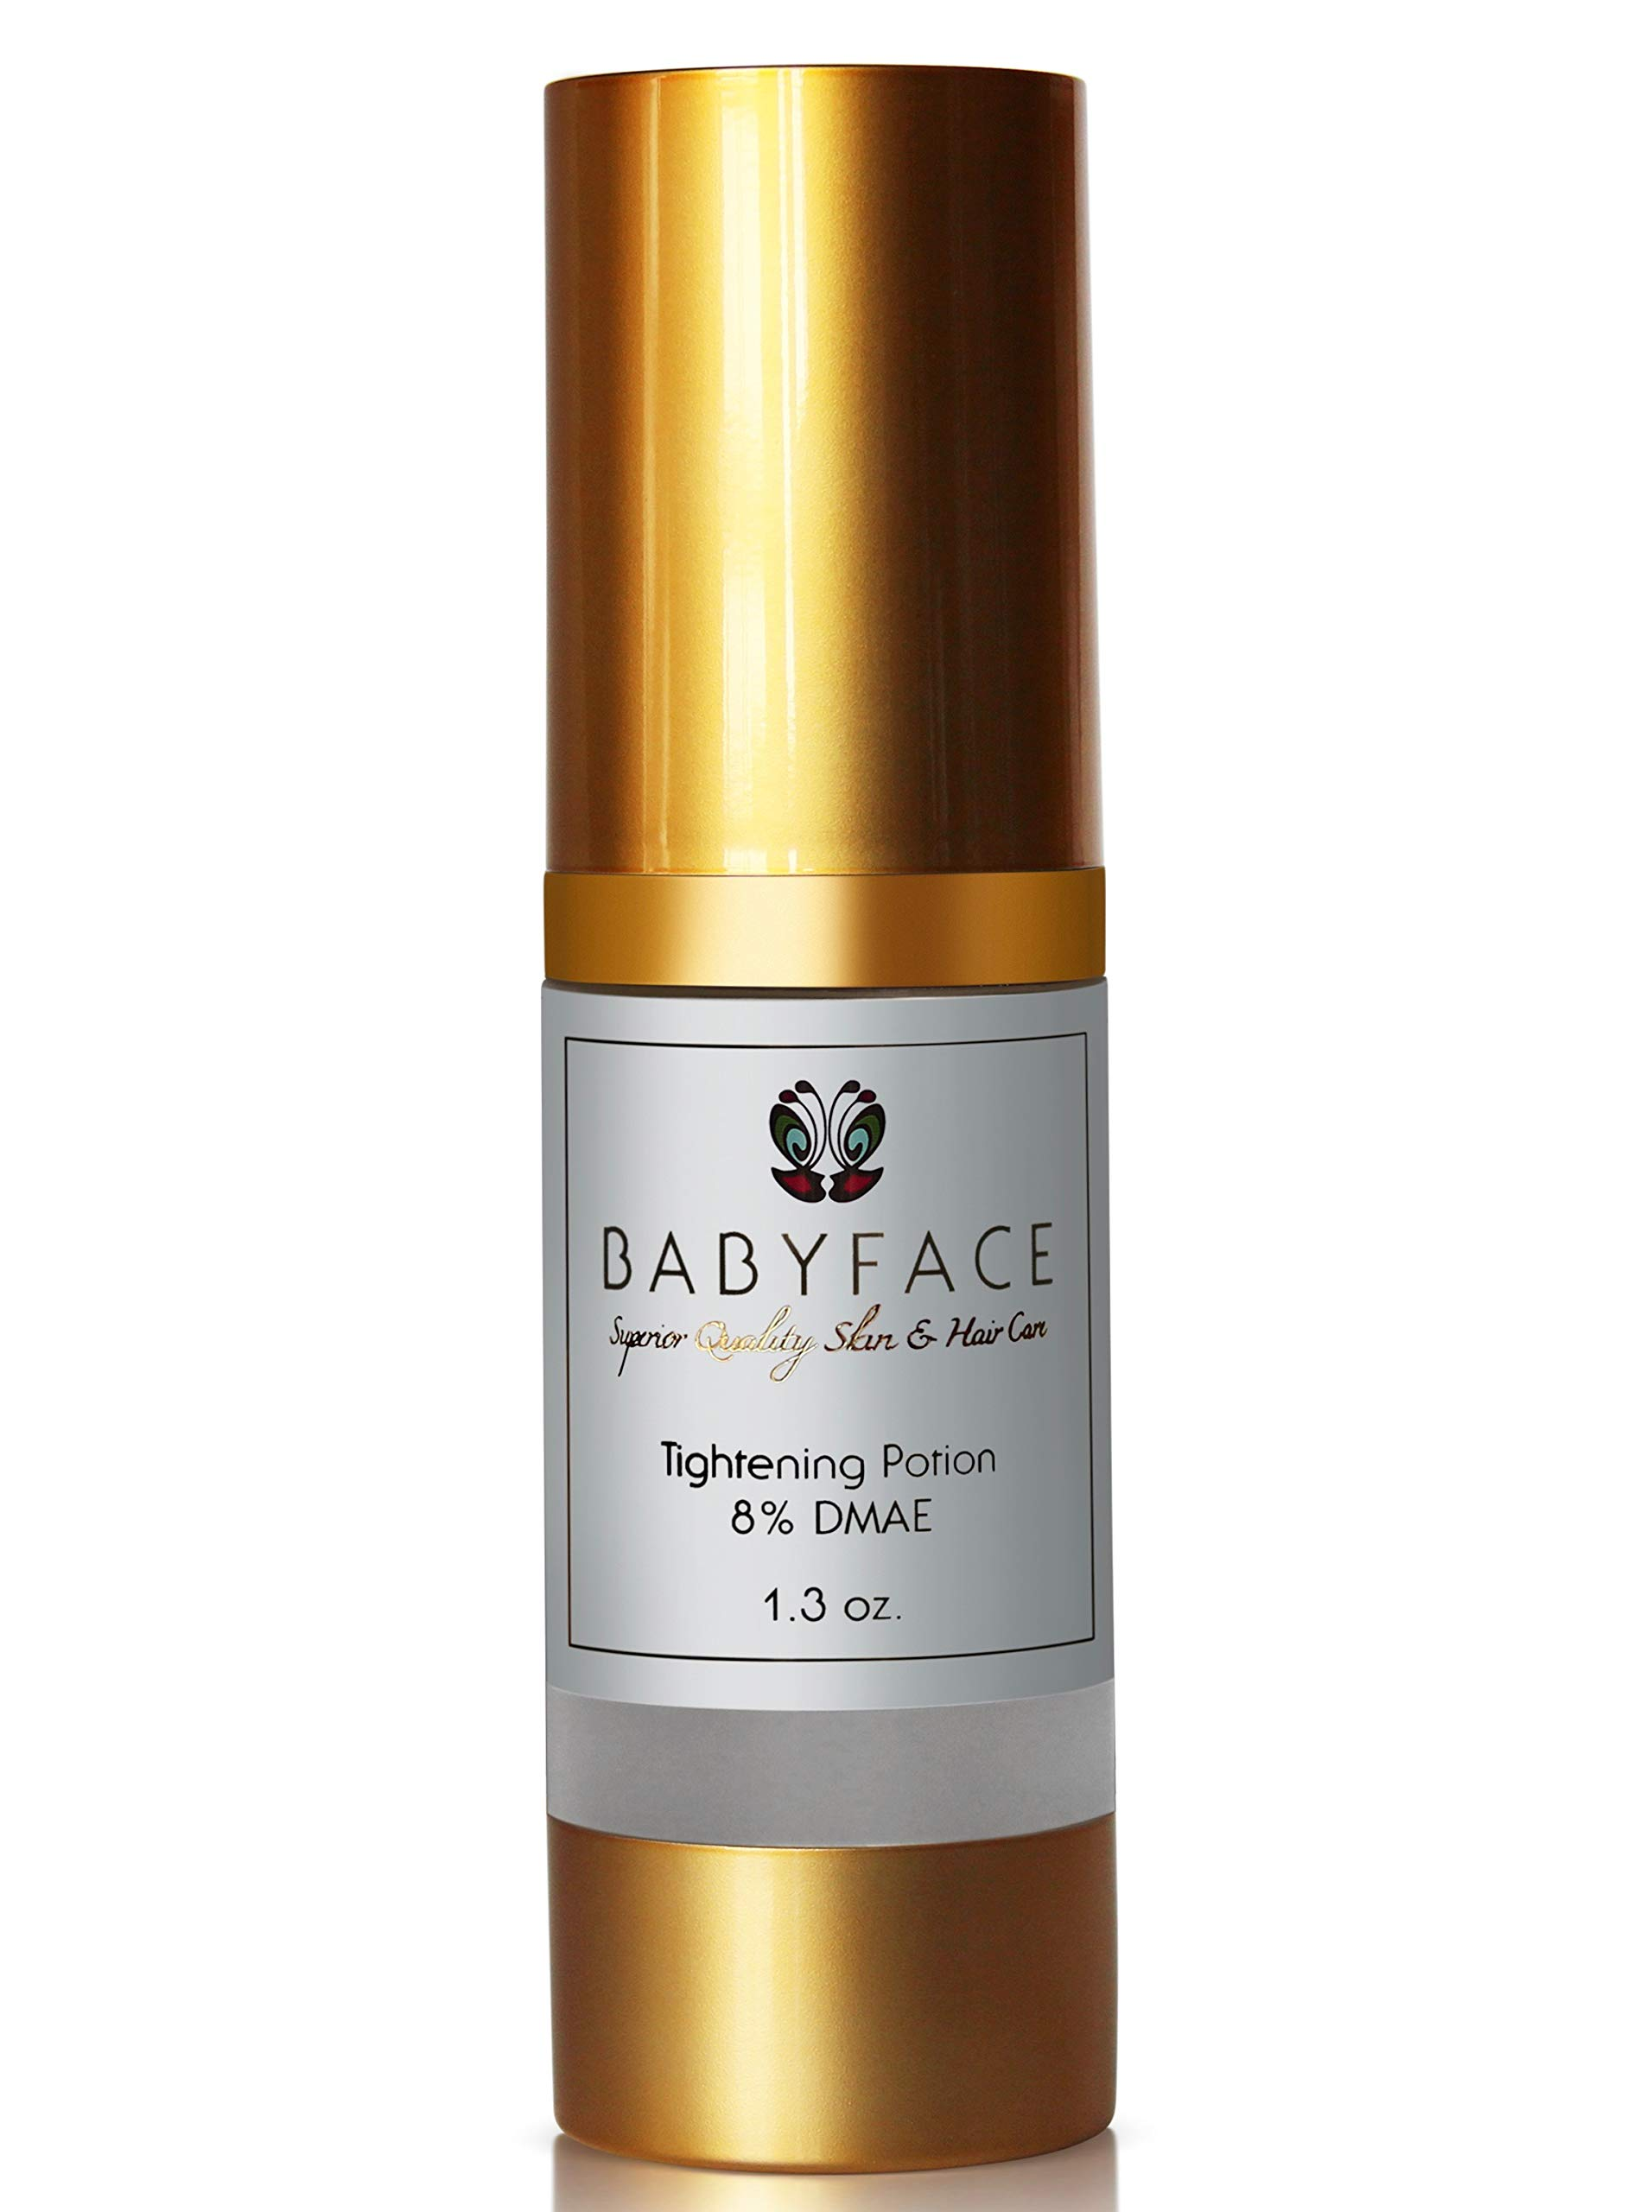 Babyface DMAE Serum at 8%, Anti-Ageing for Face & Neck, Pore Minimizer | No Wrinkles & Fine Lines, Tightening, Instant Lift, Moisturiser, Collagen Booster, Sagging Skin Repair, Give Tone & Elasticity